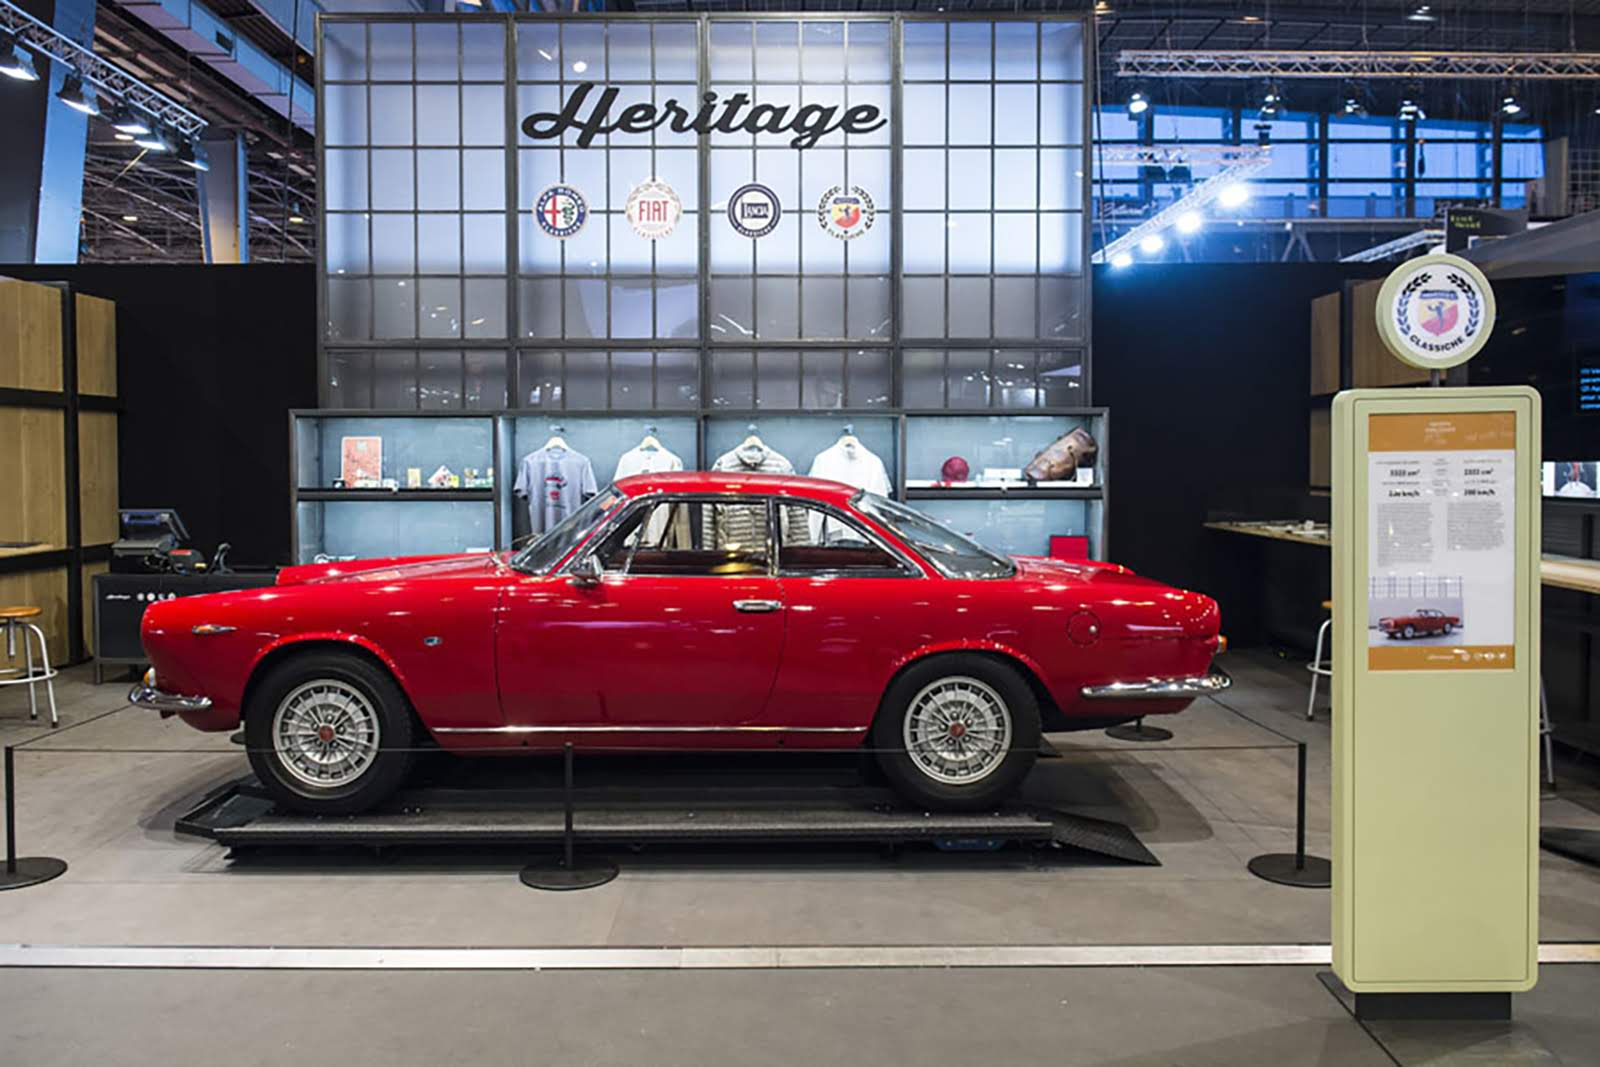 Heritage booth - retromobile Show - Paris